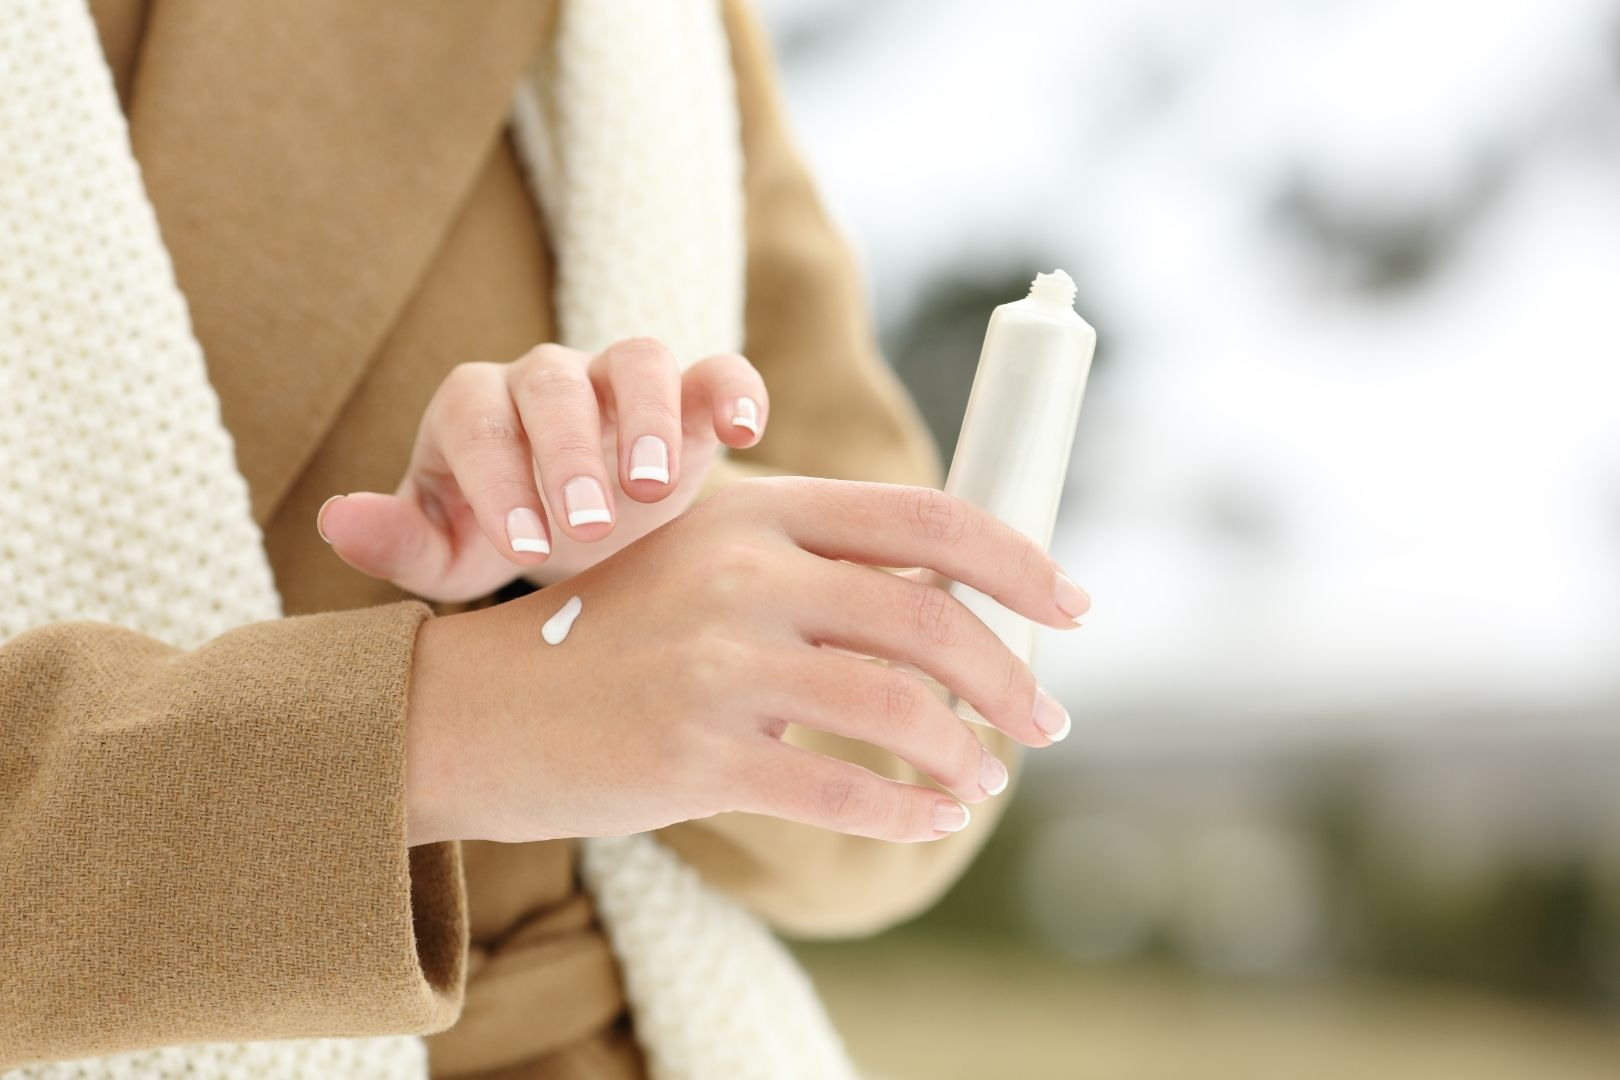 Woman in winter coat rubs lotions onto her dry skin